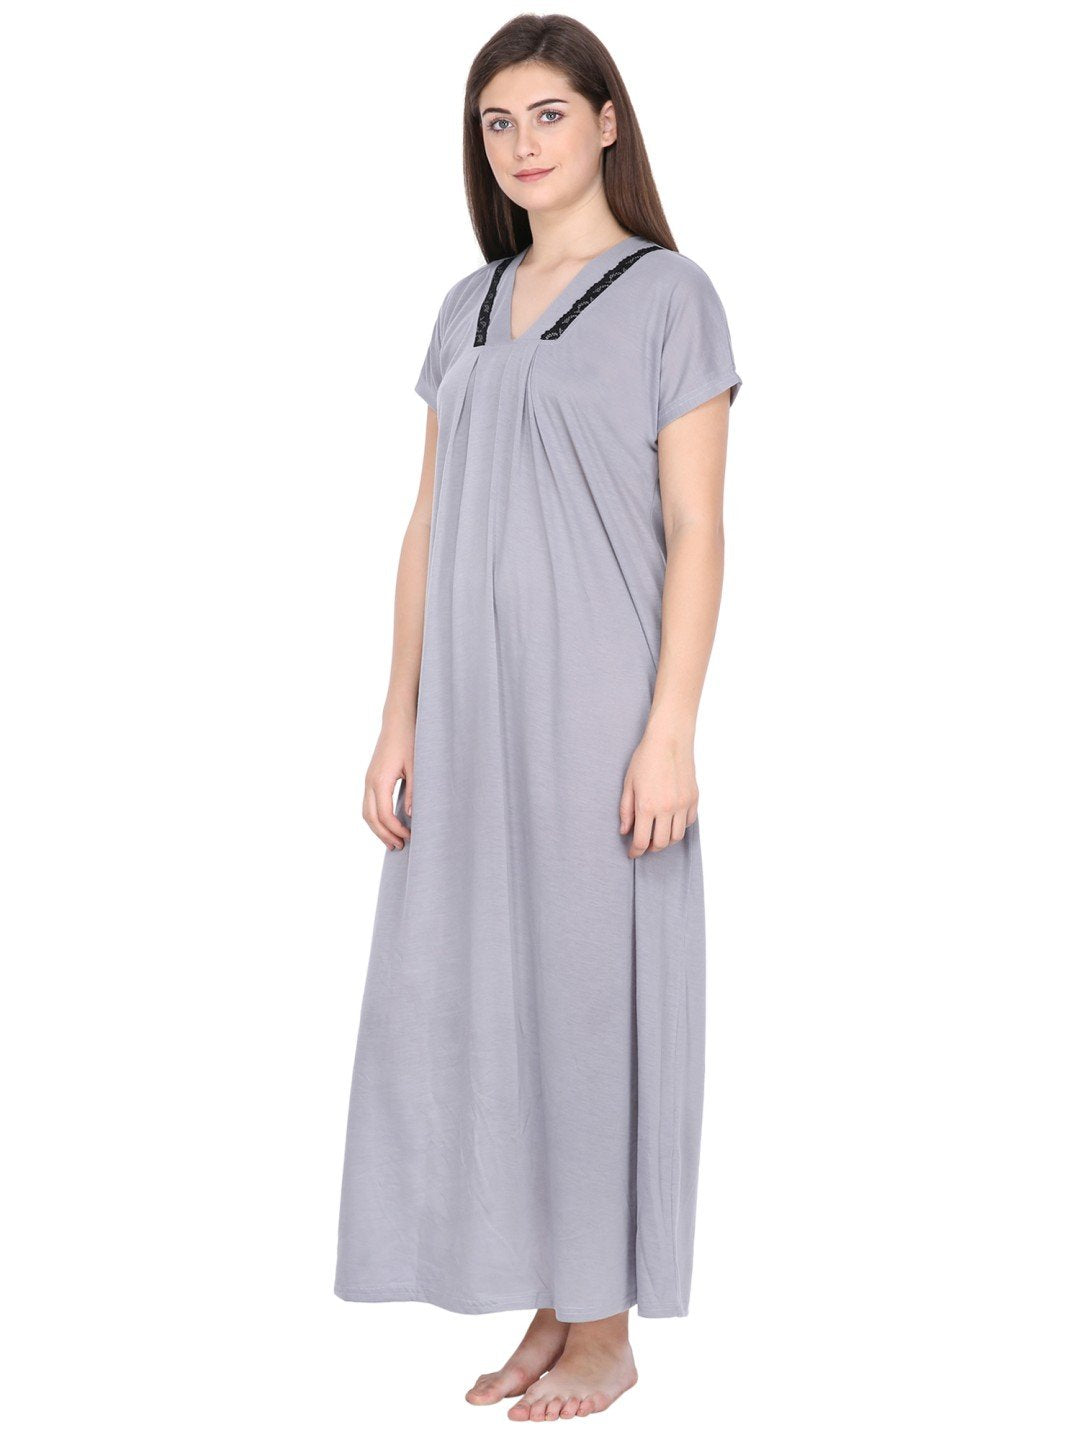 Klamotten_long nightdress_L2Z